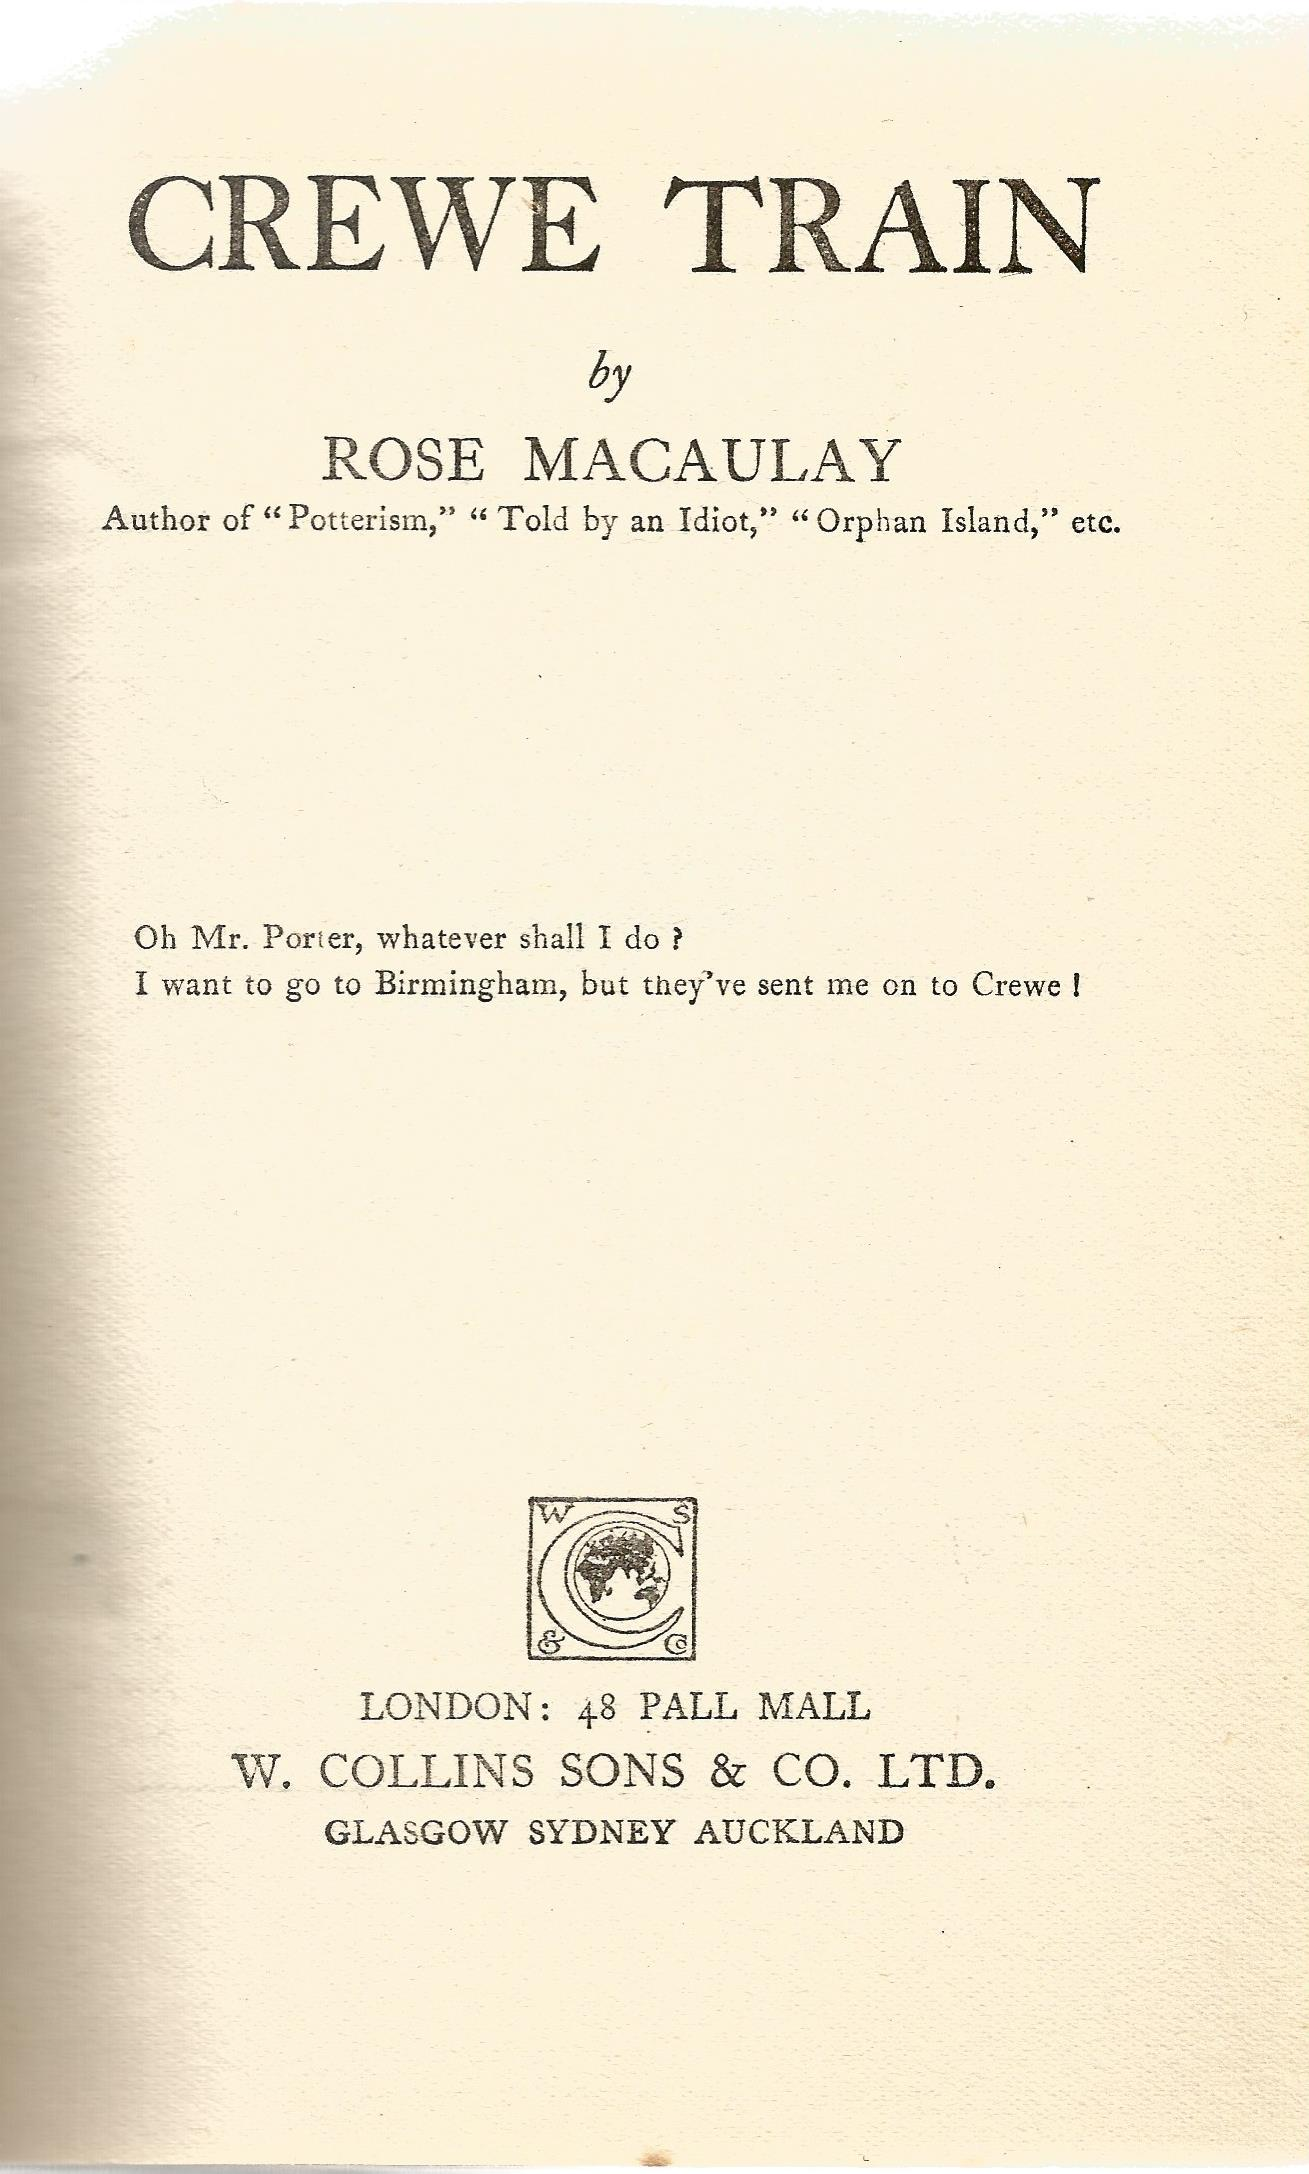 Signed Hardback Book Crewe Train by Rose Macaulay signed by the Author on the first page First - Image 2 of 3